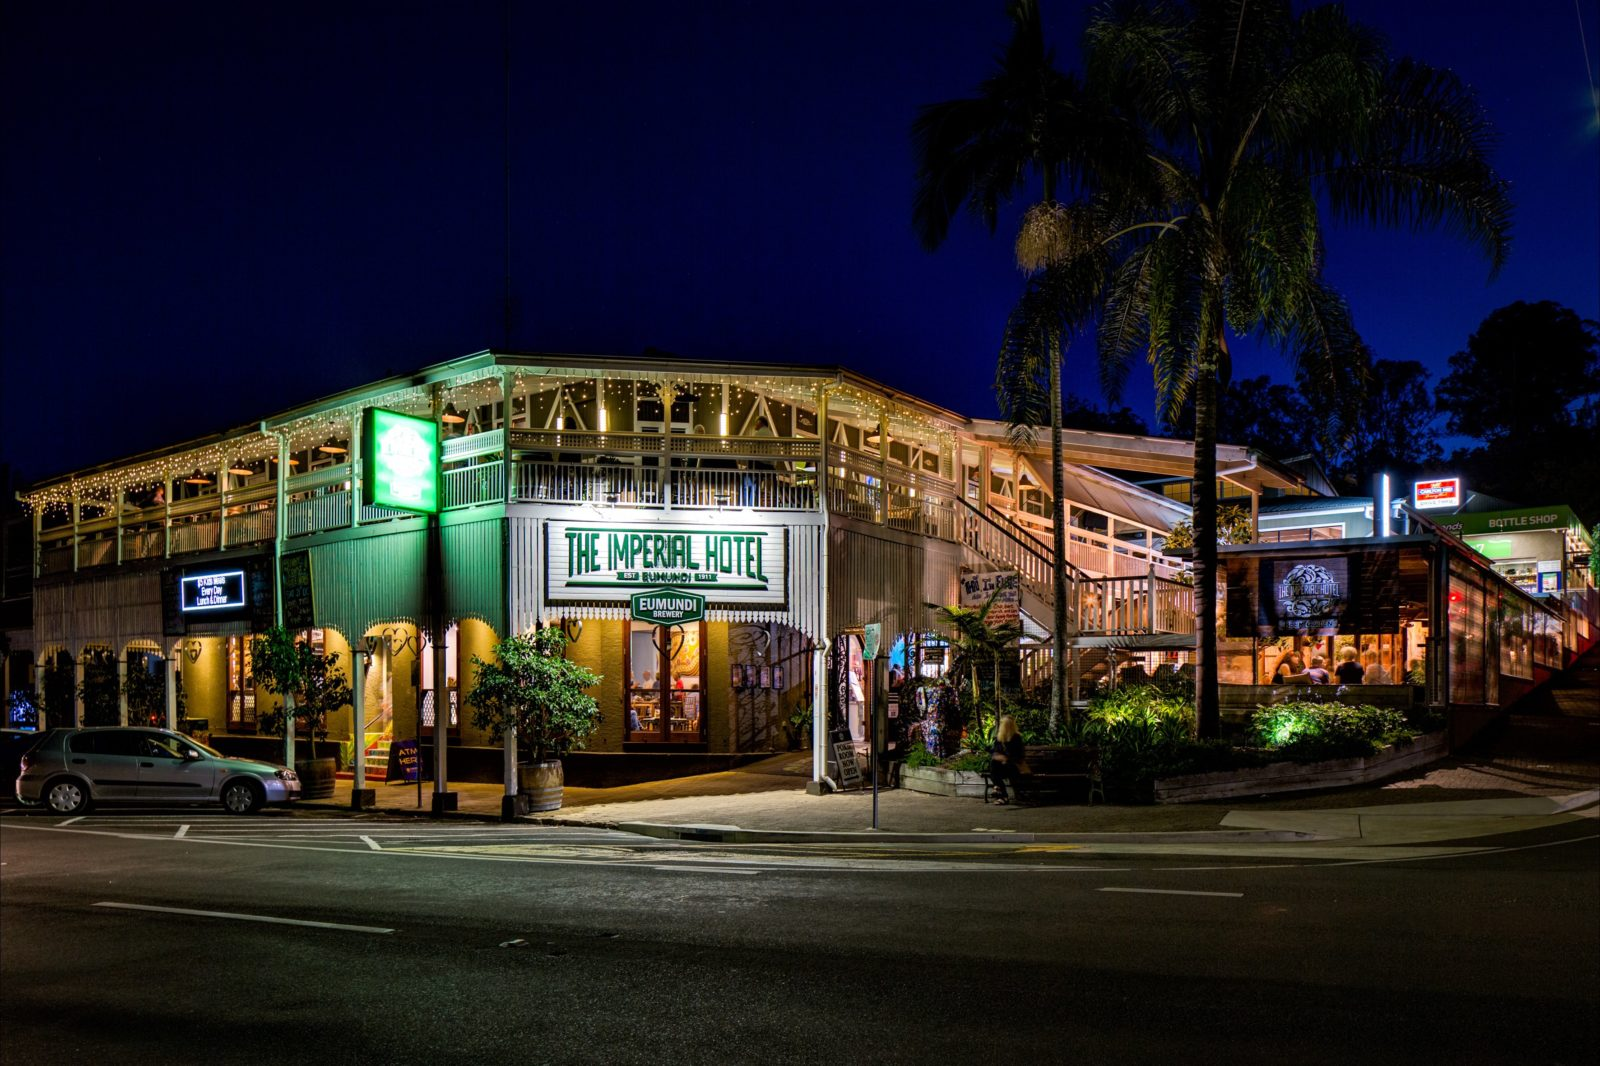 The Imperial Hotel and Eumundi Brewery